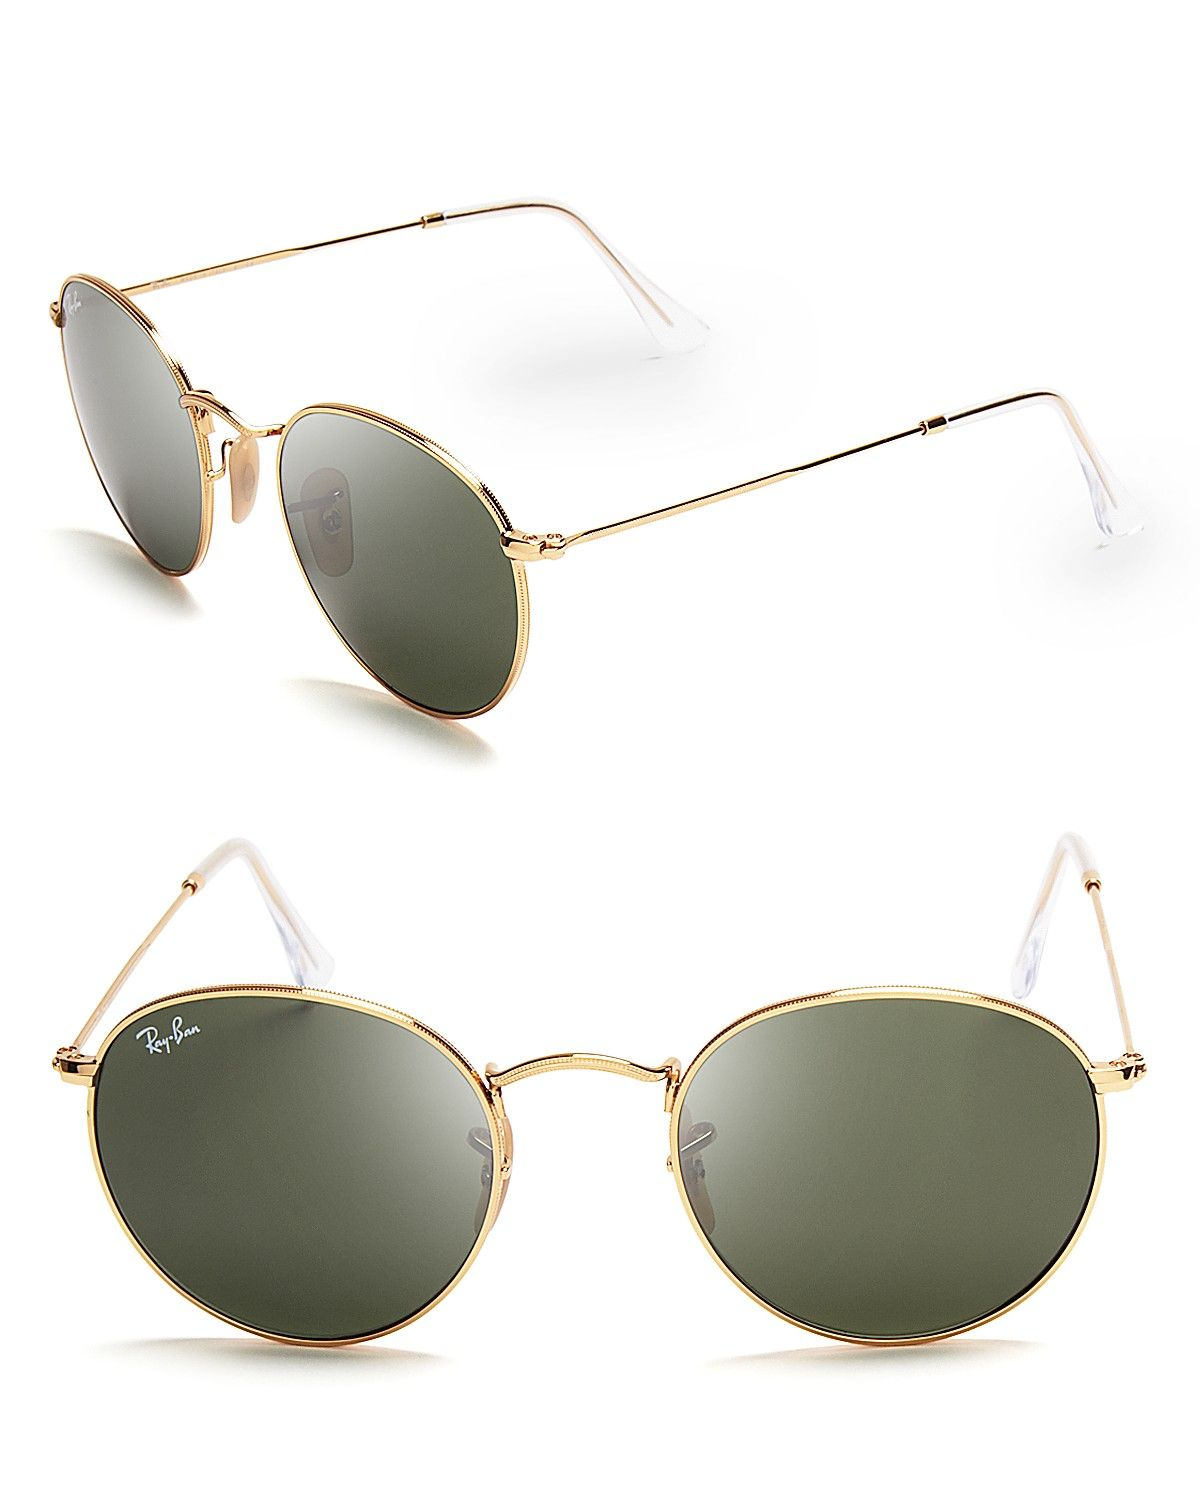 Ray-Ban produces another hit pair of shades, this time ...